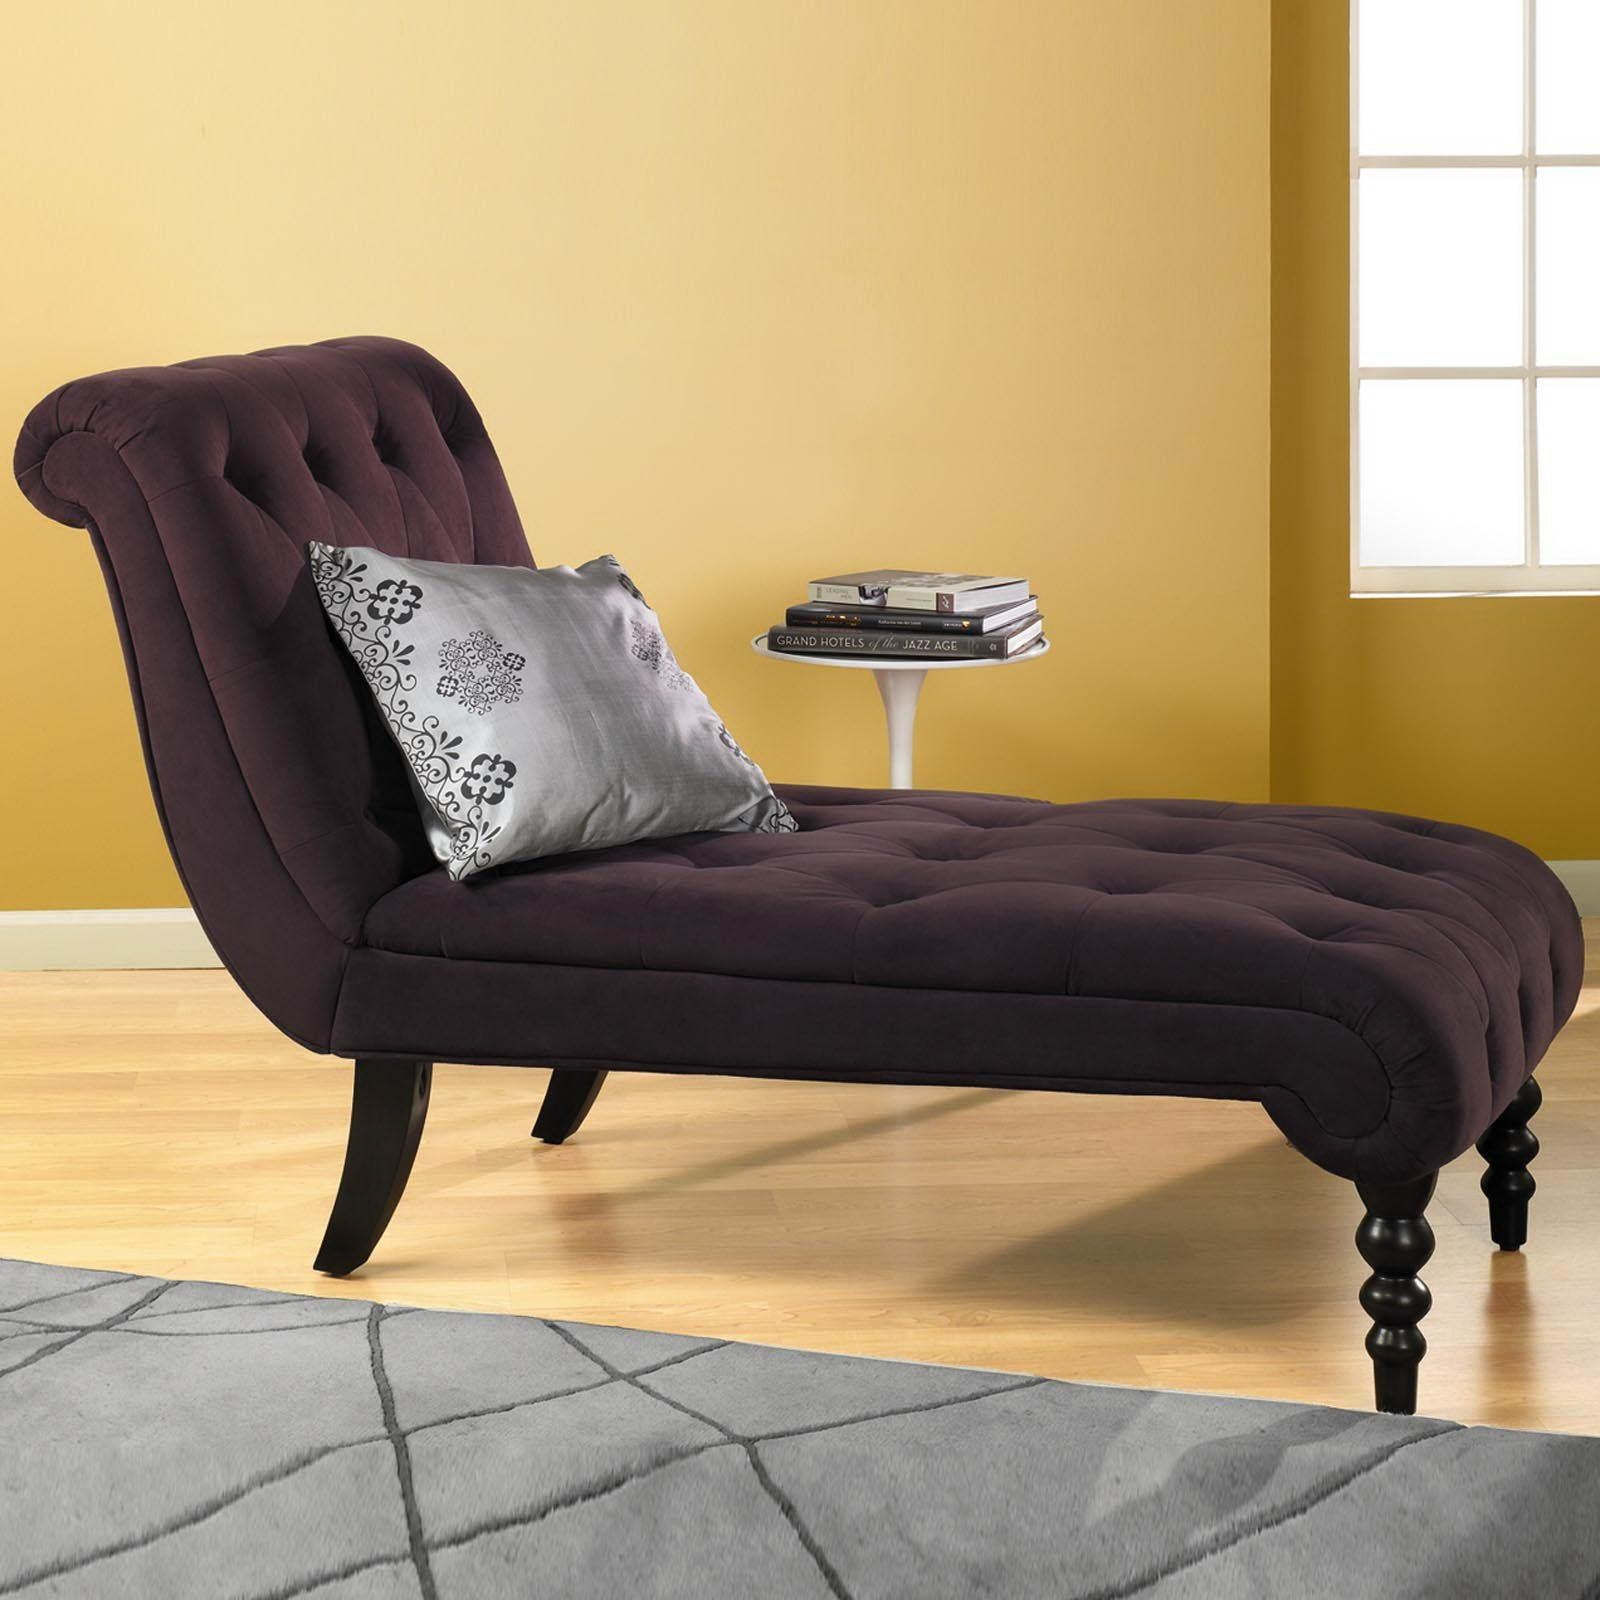 Cheap Sofa Chairs 20 Collection Of Chaise Sofa Chairs Sofa Ideas